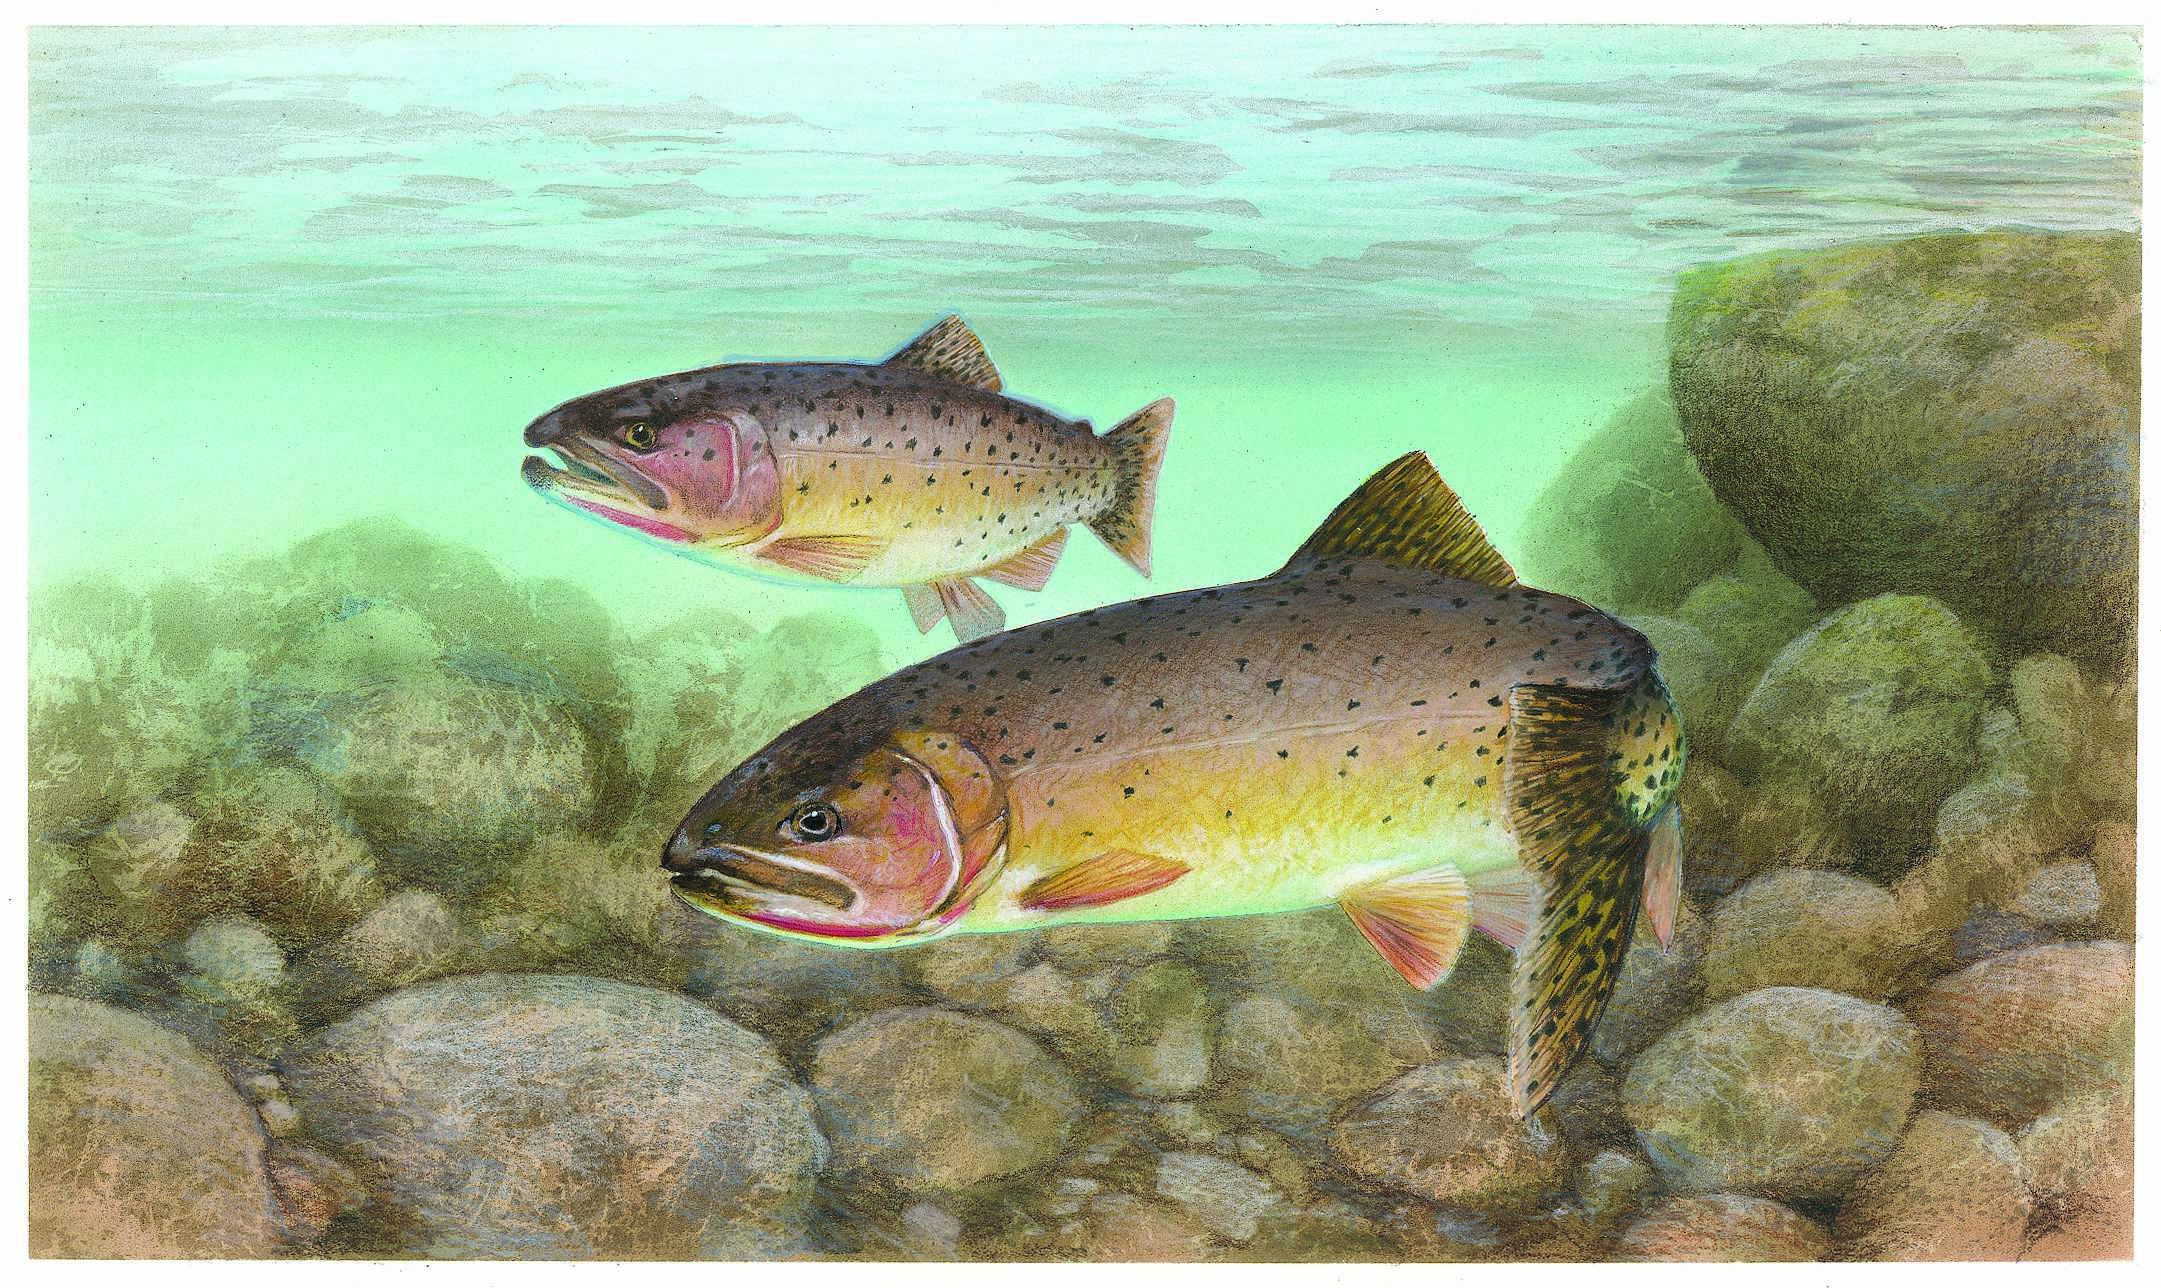 Rainbow trout - Wikipedia